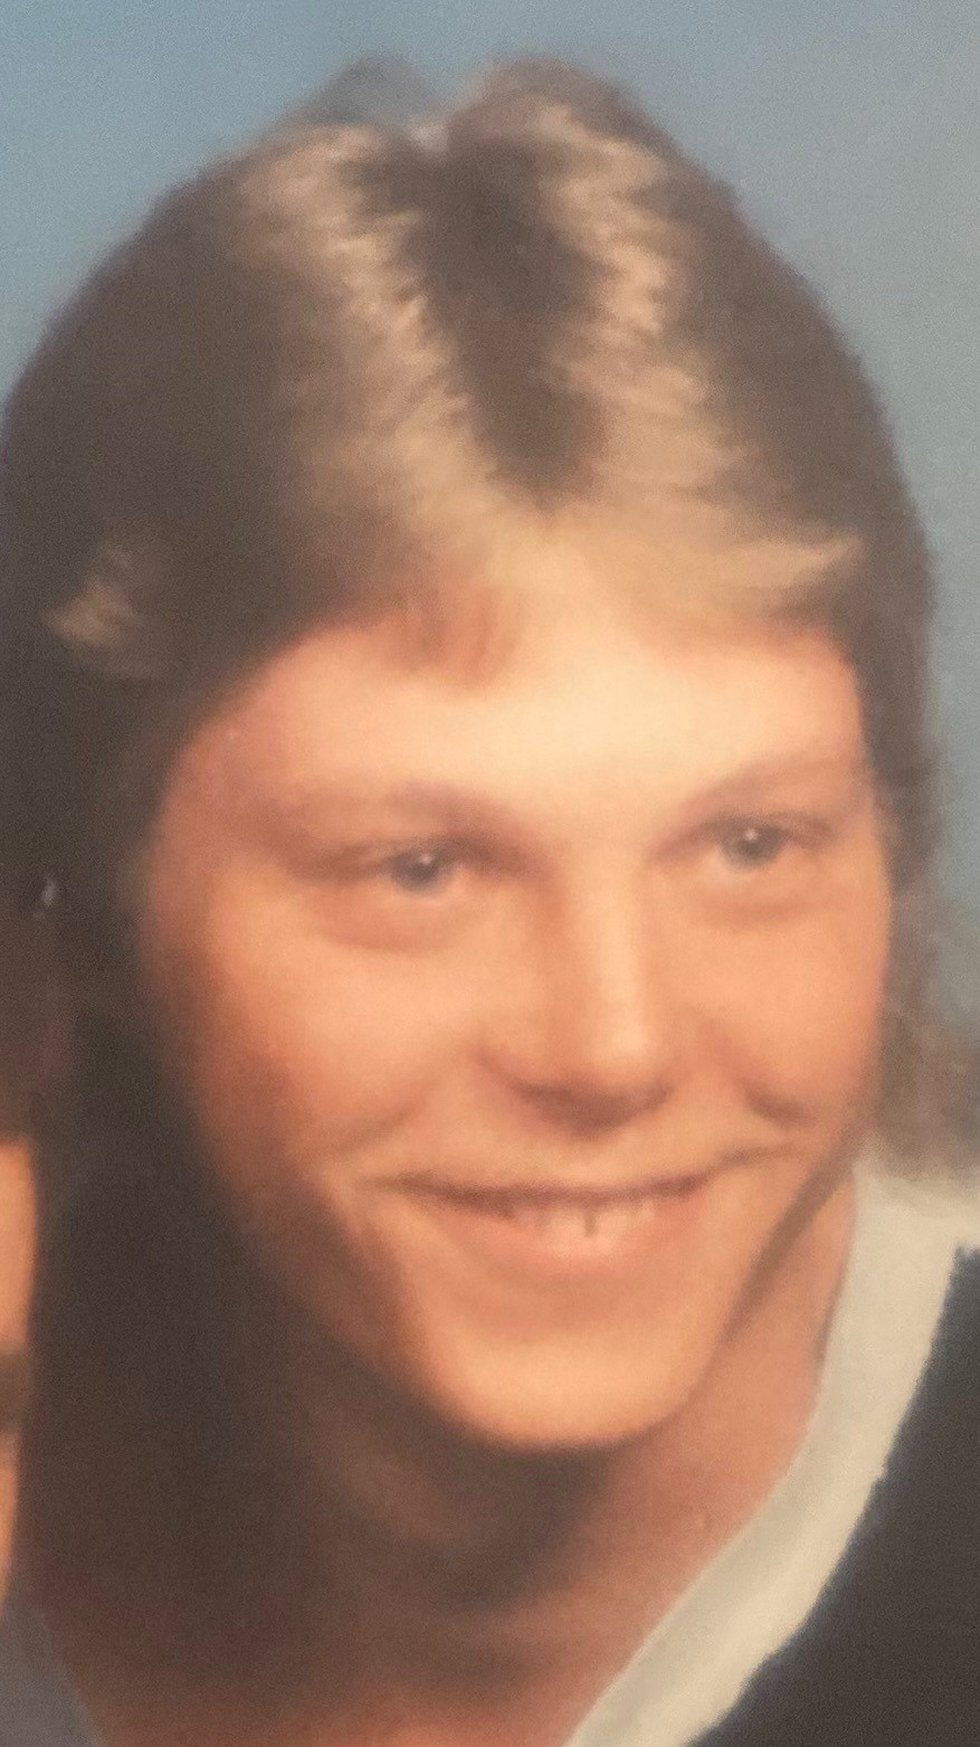 Todd M. Carr, 51, formerly of Natural Bridge died peacefully on September 29, 2021 at the UHS...